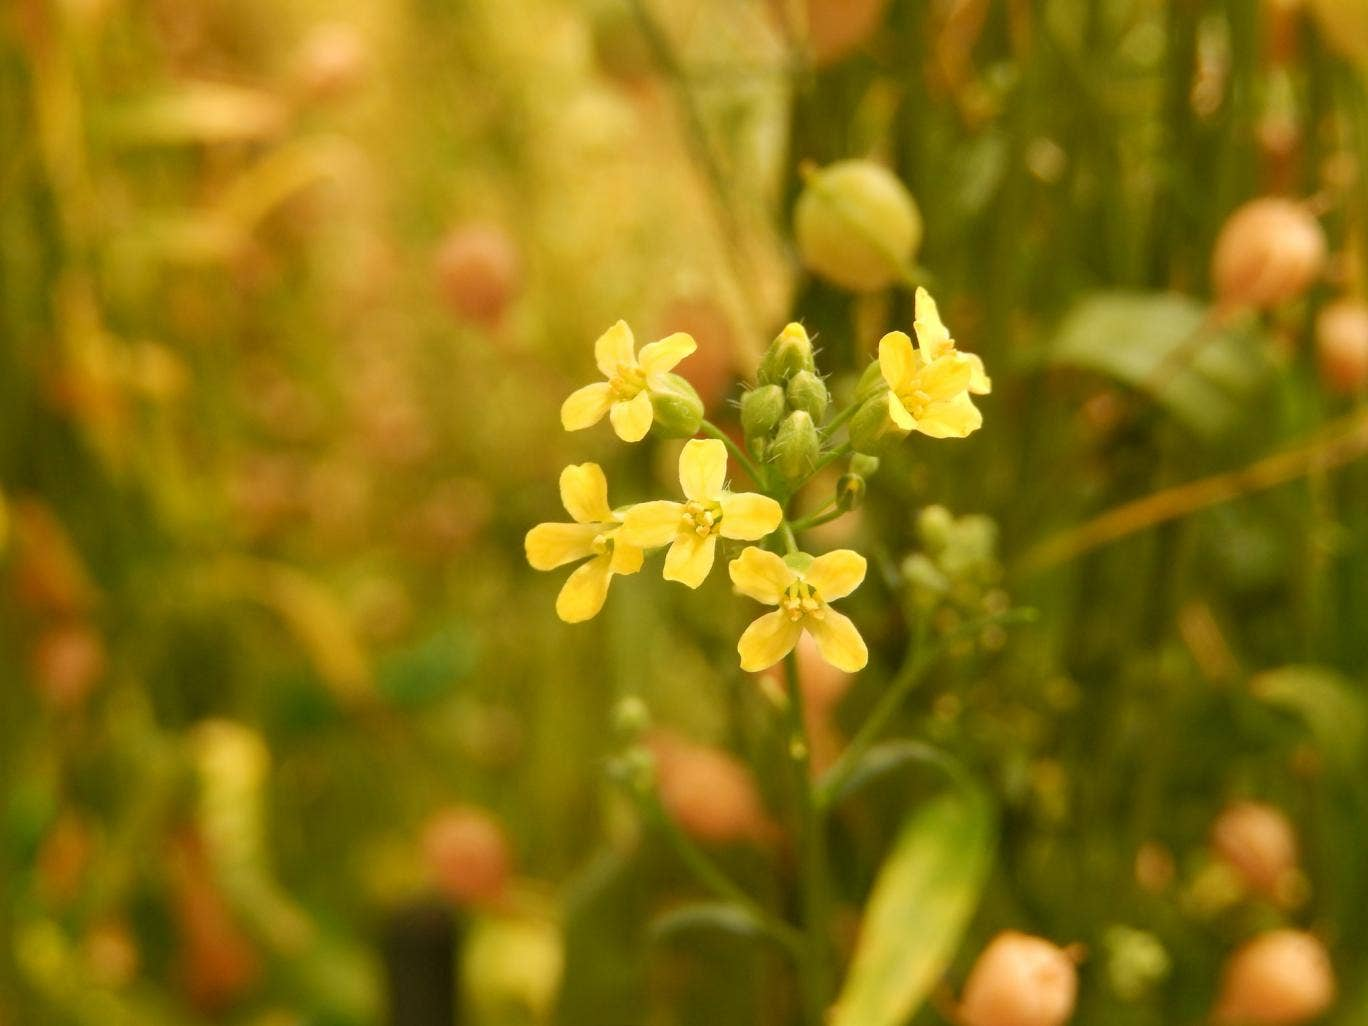 Camelina sativa plants are engineered with synthetic omega-3 genes that trigger the production of the 'fish oil' in the seeds of the harvested crop